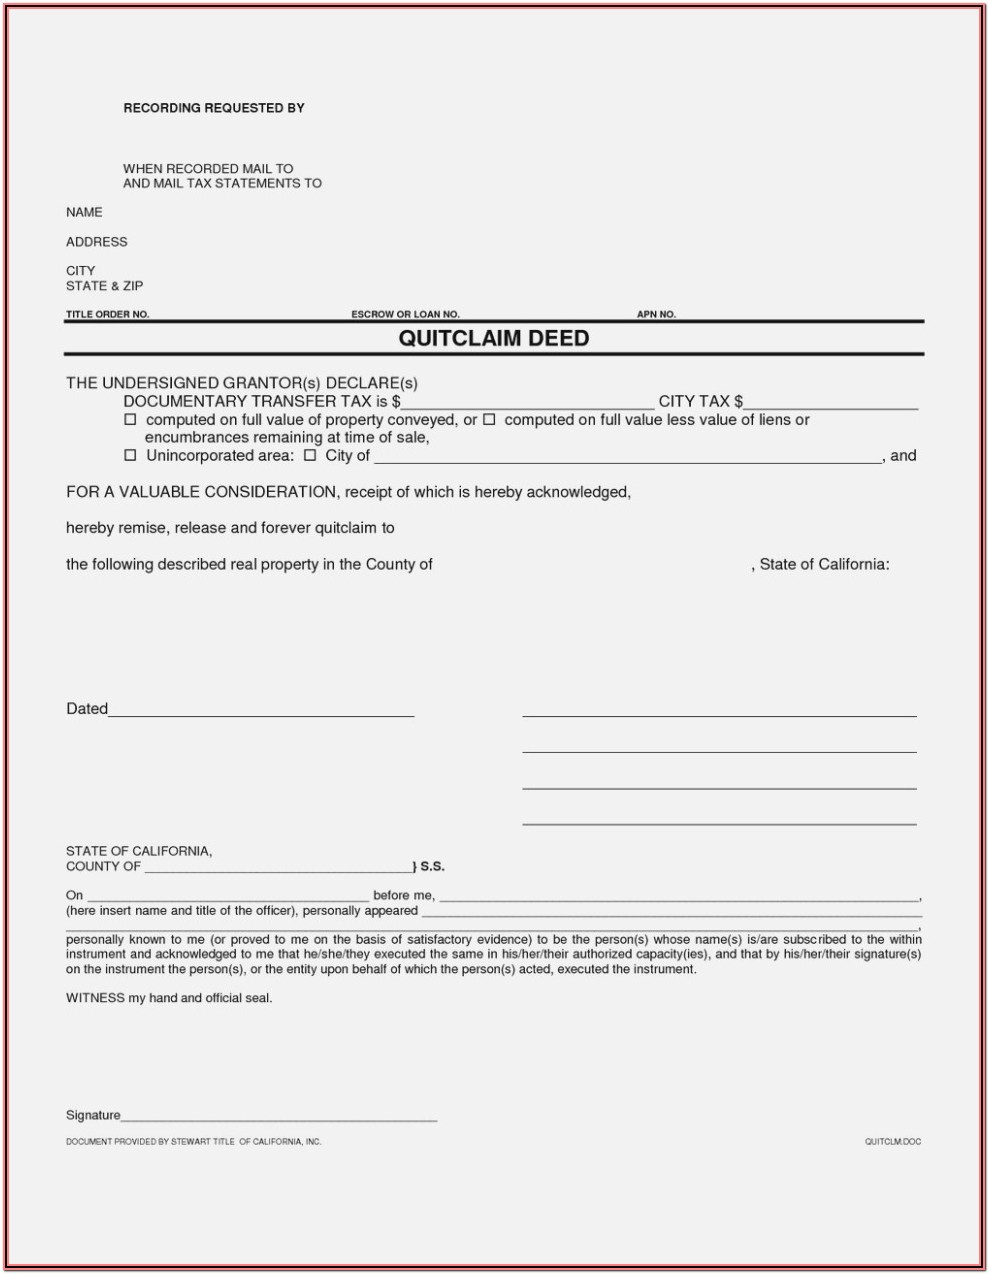 Free Grant Deed Form California